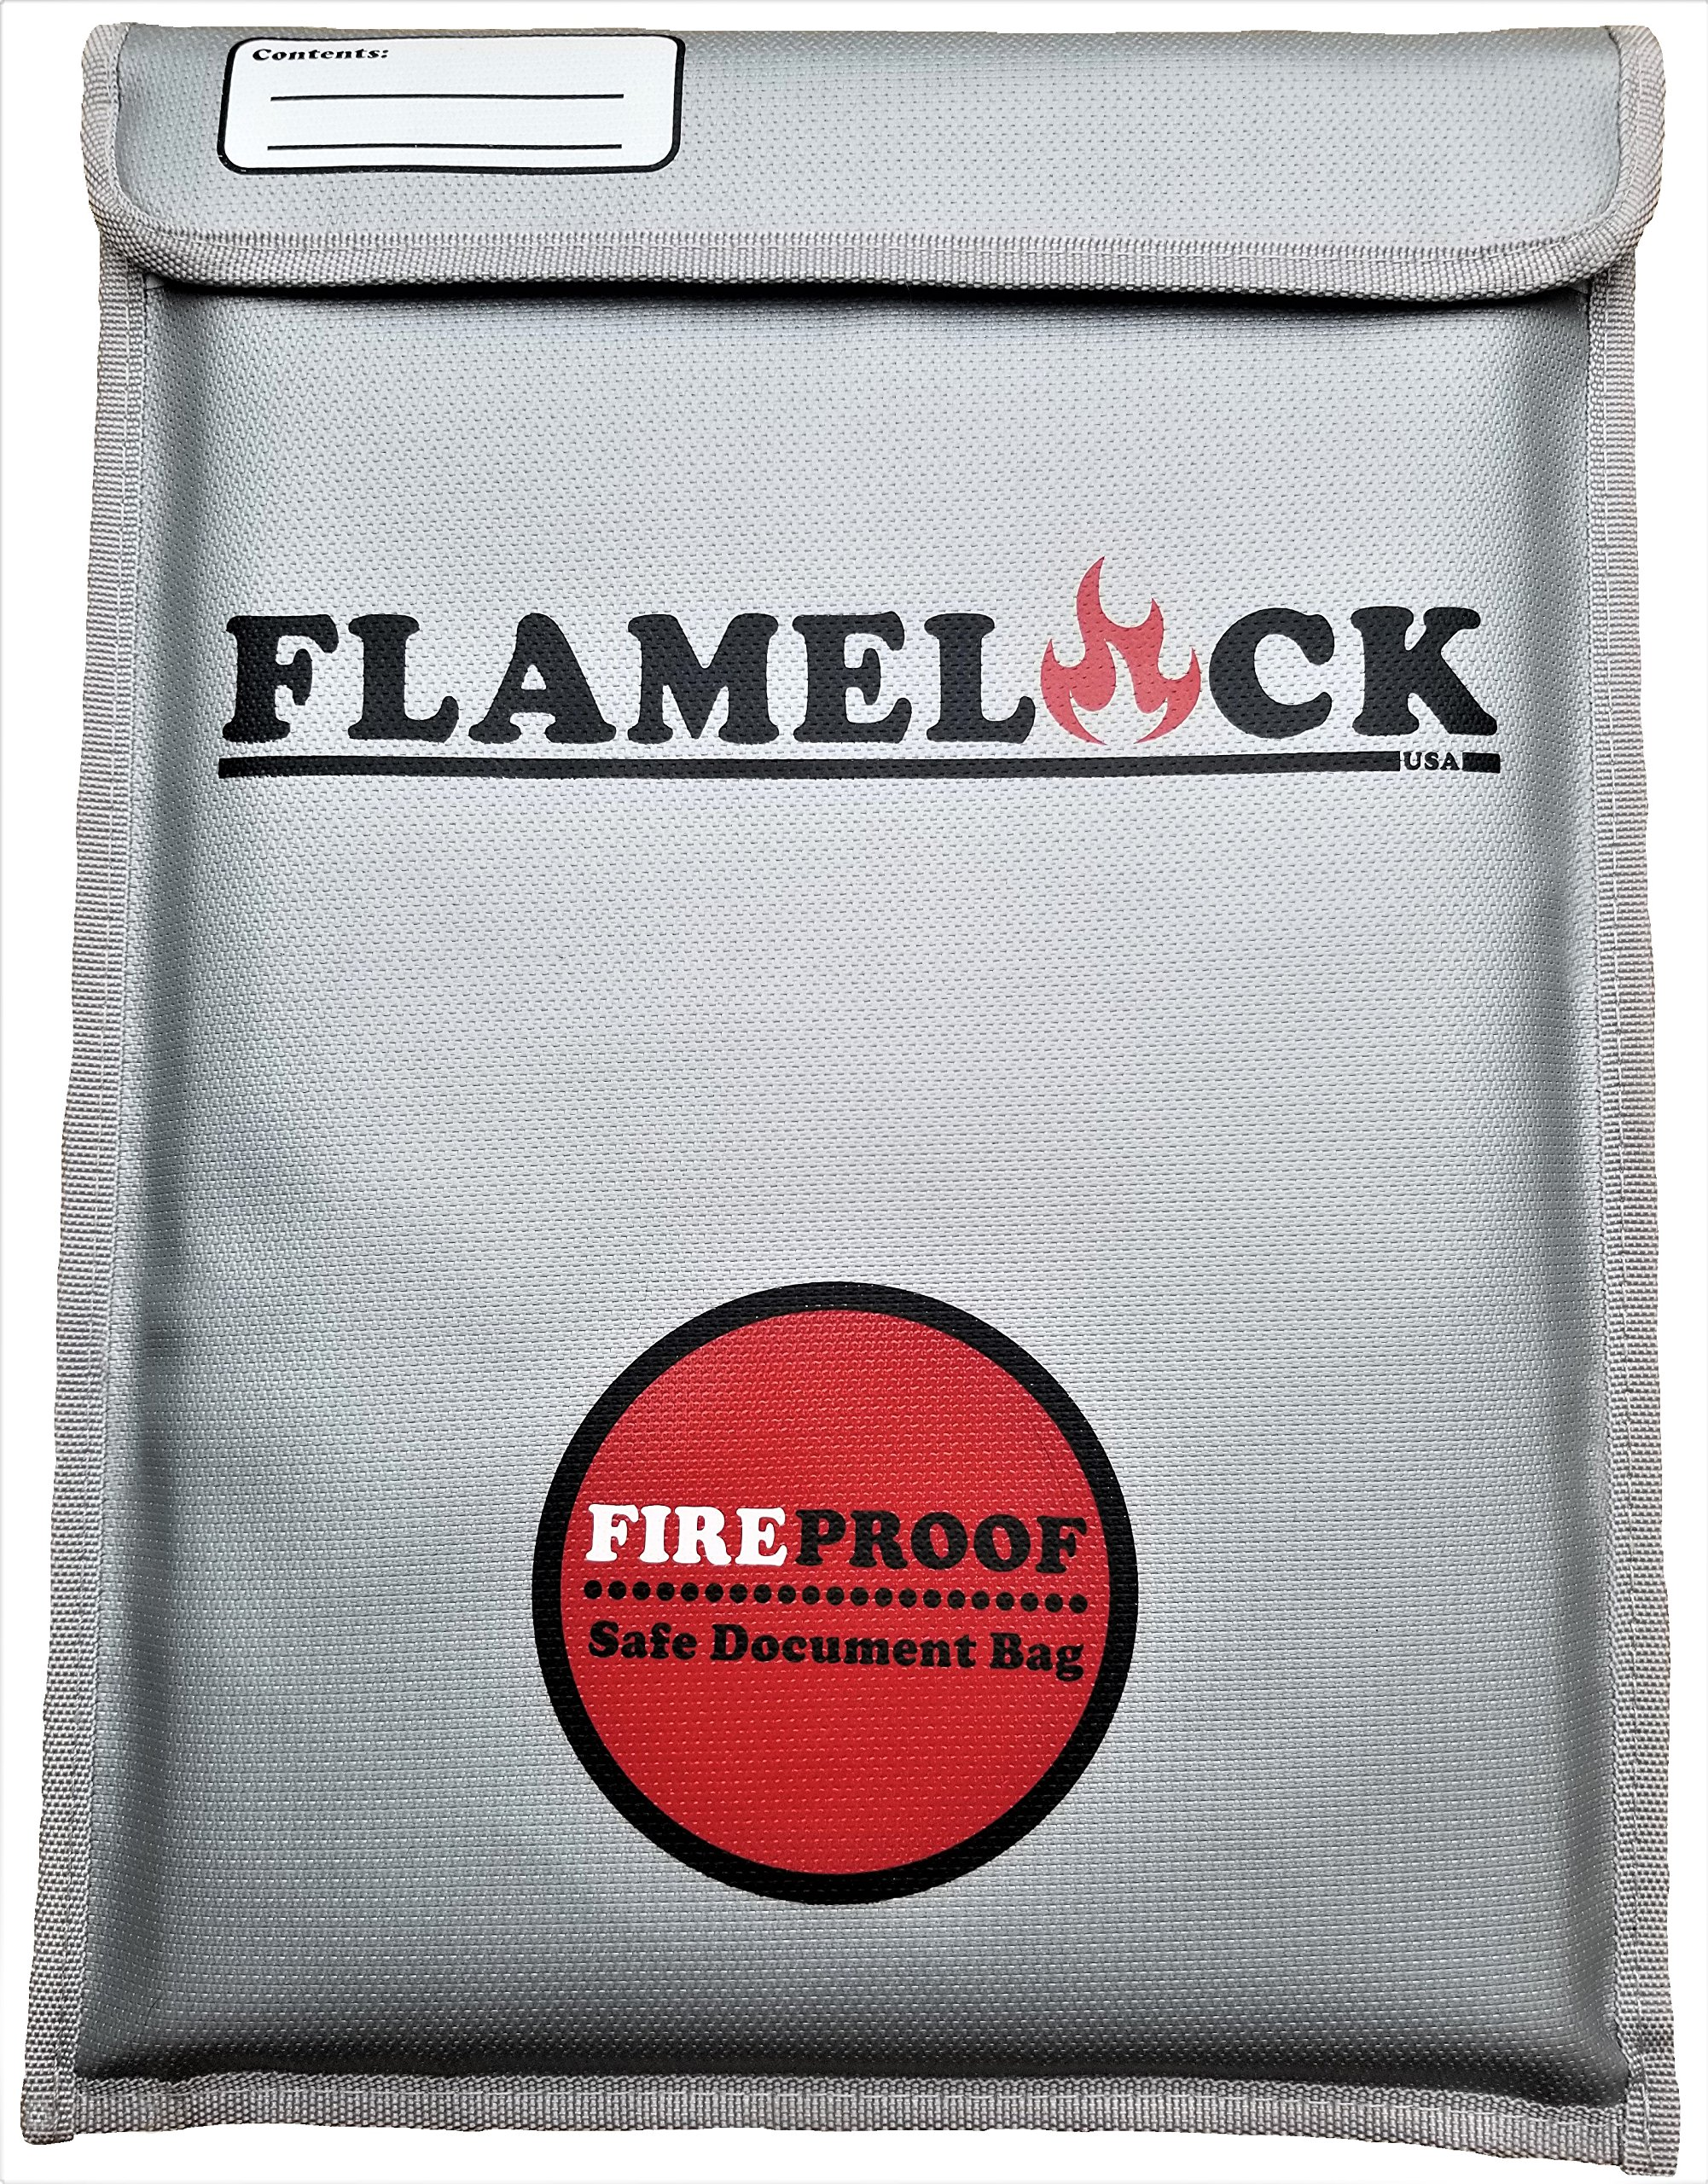 FLAMELOCK - Fireproof Document Bag 15'' x 11'' Non-Itchy Silicone Coated Fire Resistant Money Bag Fireproof Safe Storage for Money, Deeds, Titles, Documents, Jewelry and Passports.